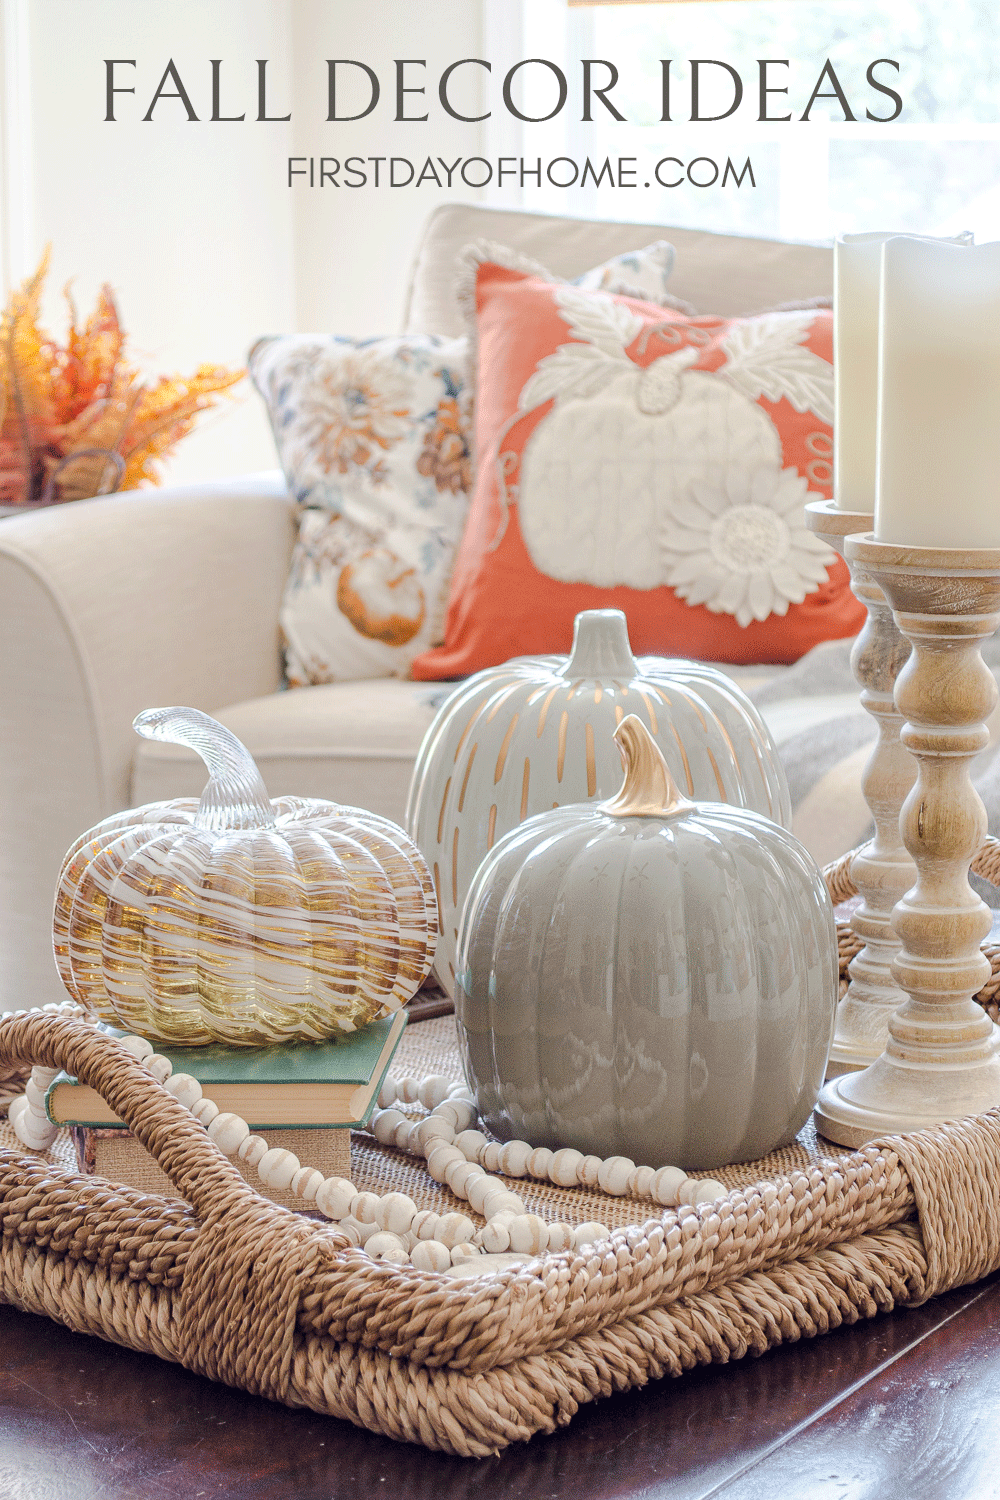 Fall centerpiece on coffee table with pumpkins and candle holders